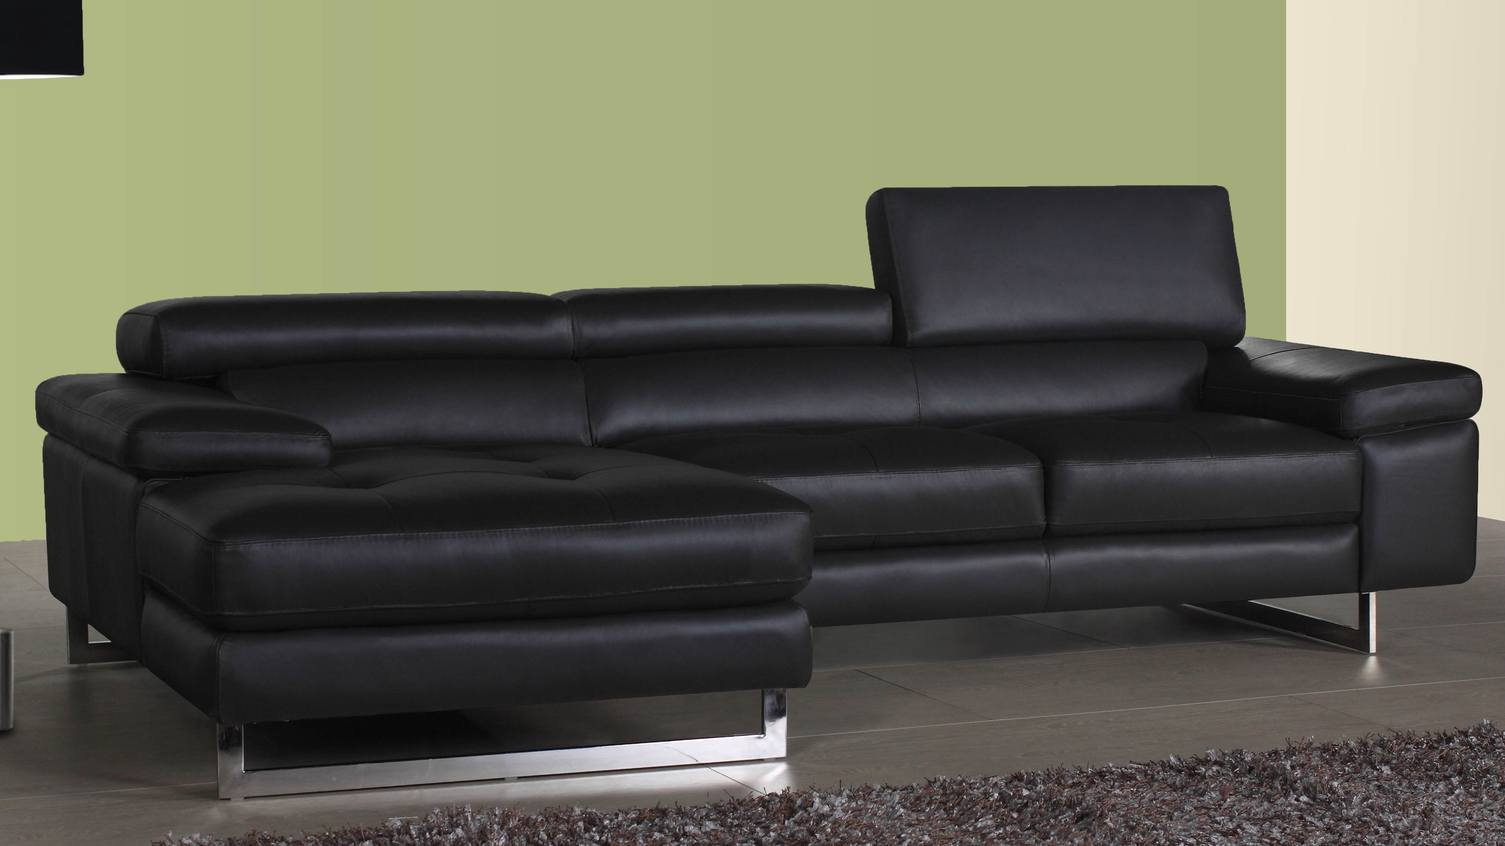 Cheap black leather corner sofa uk sofa menzilperde net for Cheap modern sofas uk